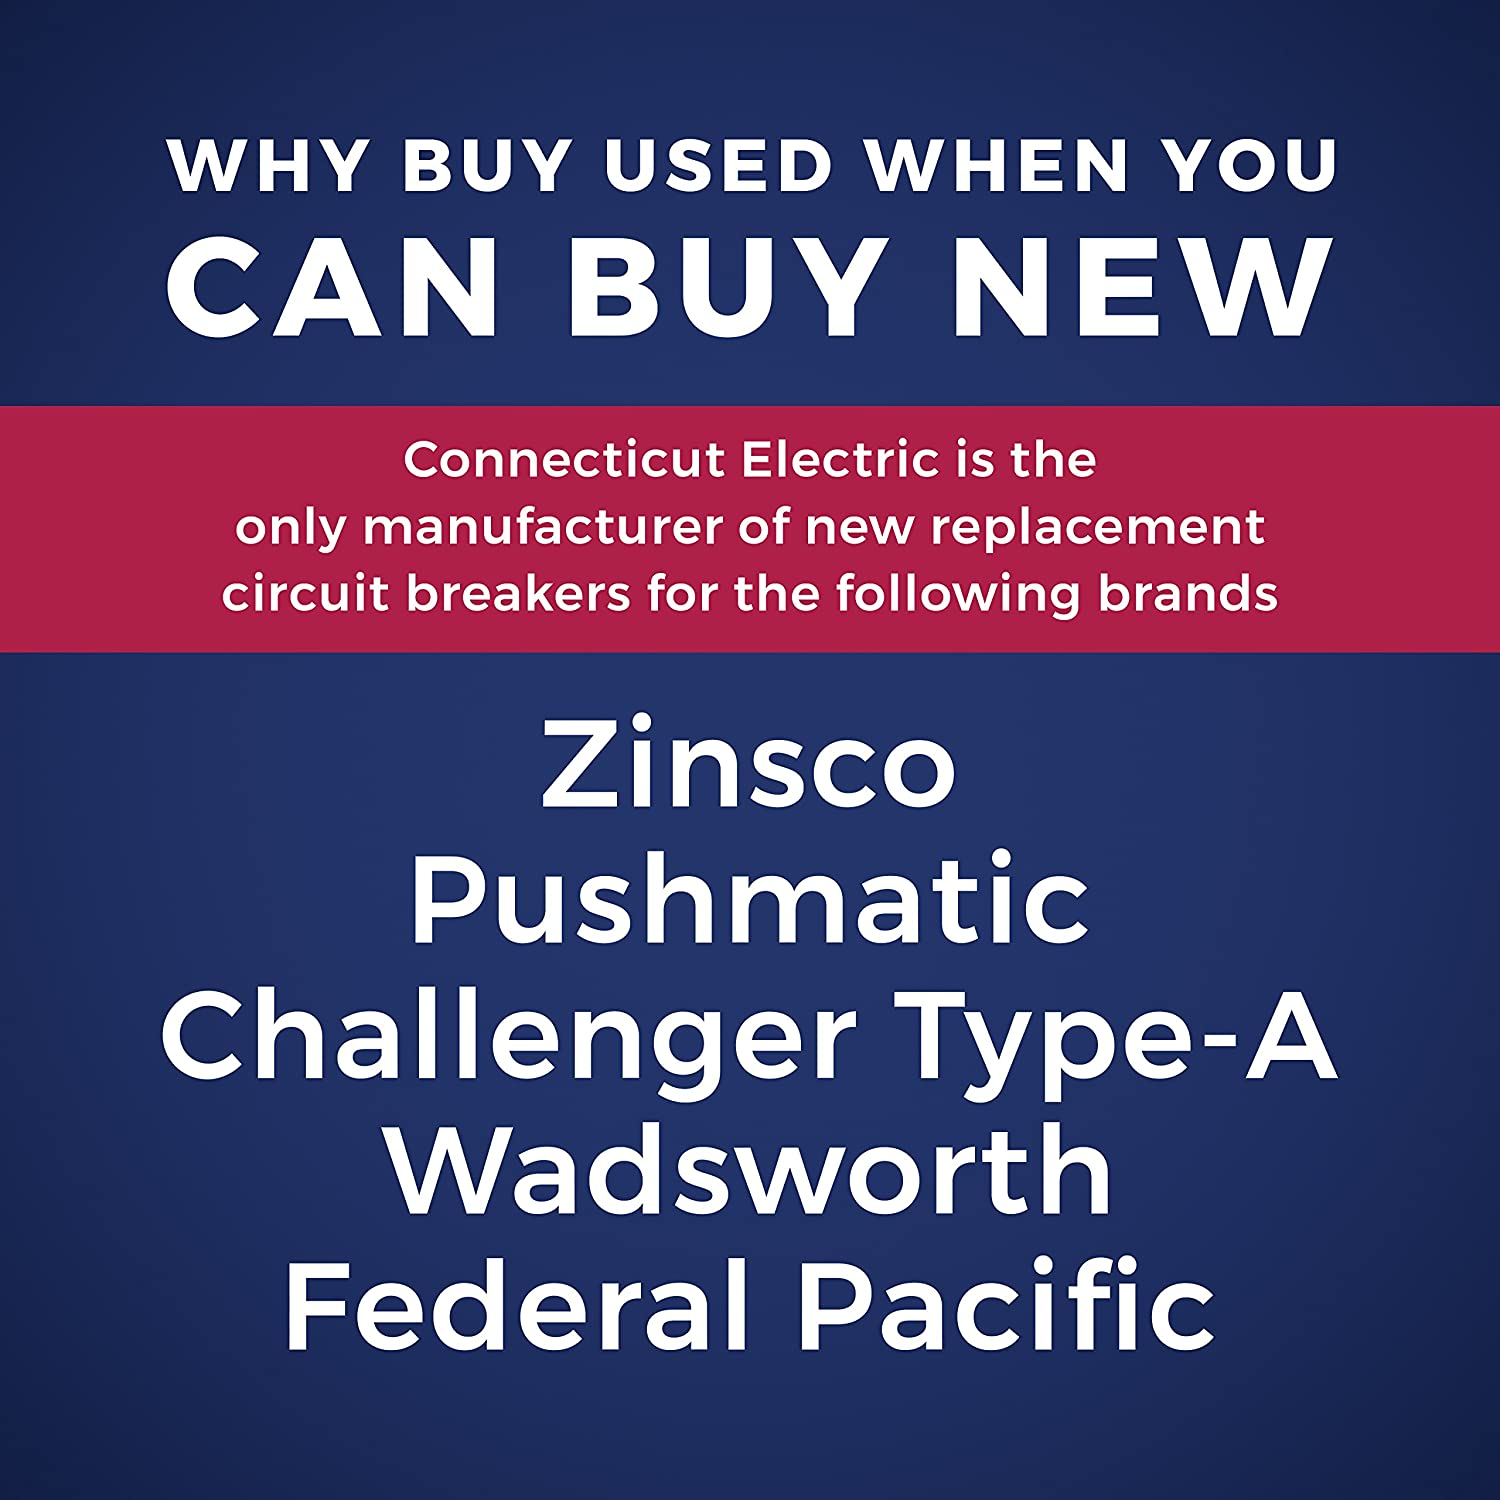 Ubiz2020 New Zinsco R3820 Replacement Twin 20 Amp Thin Series Manufactured By Connecticut Electric How To Replace A Faulty Circuit Breaker Gfci